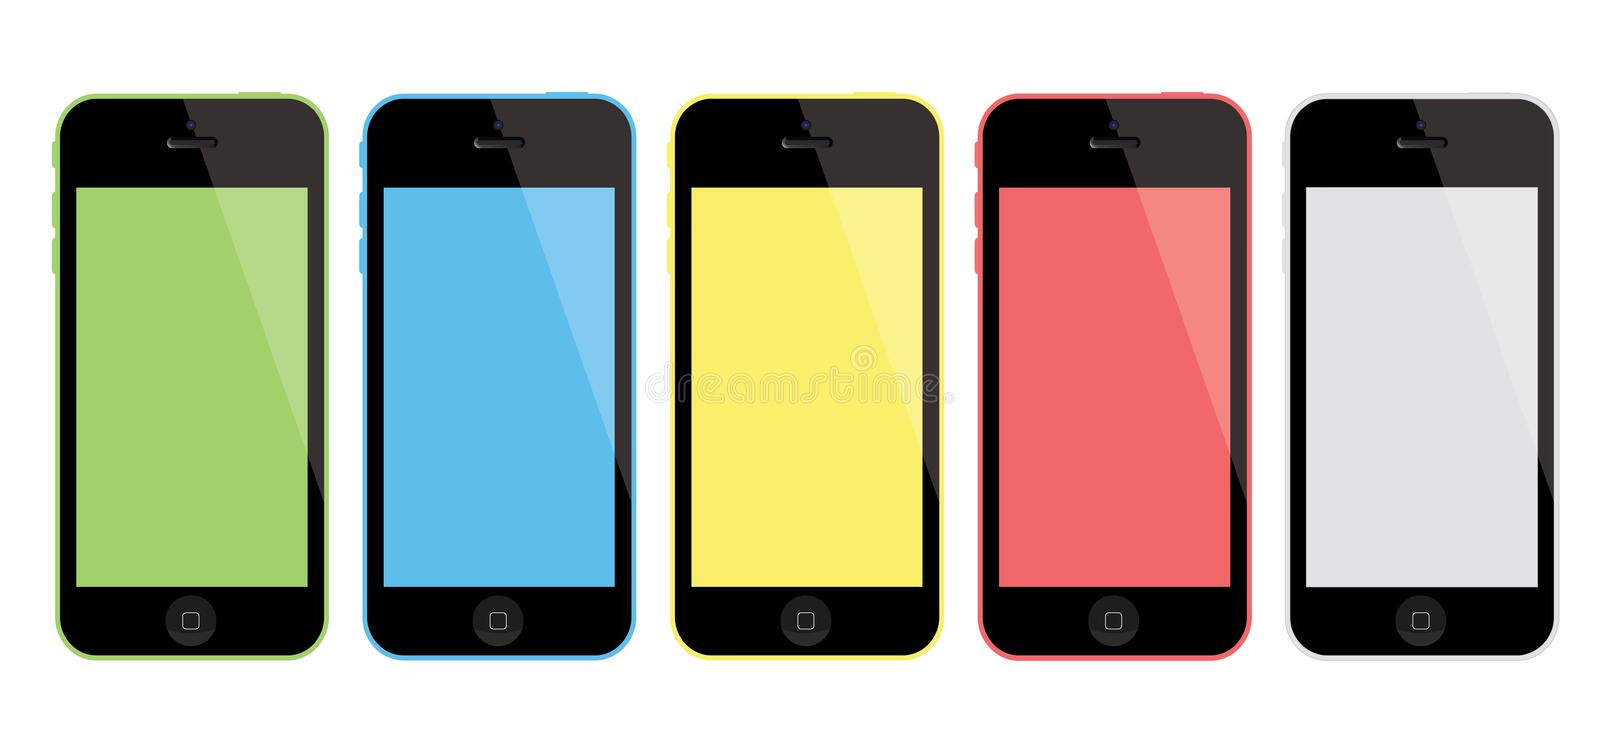 New Apple iPhone vector illustration